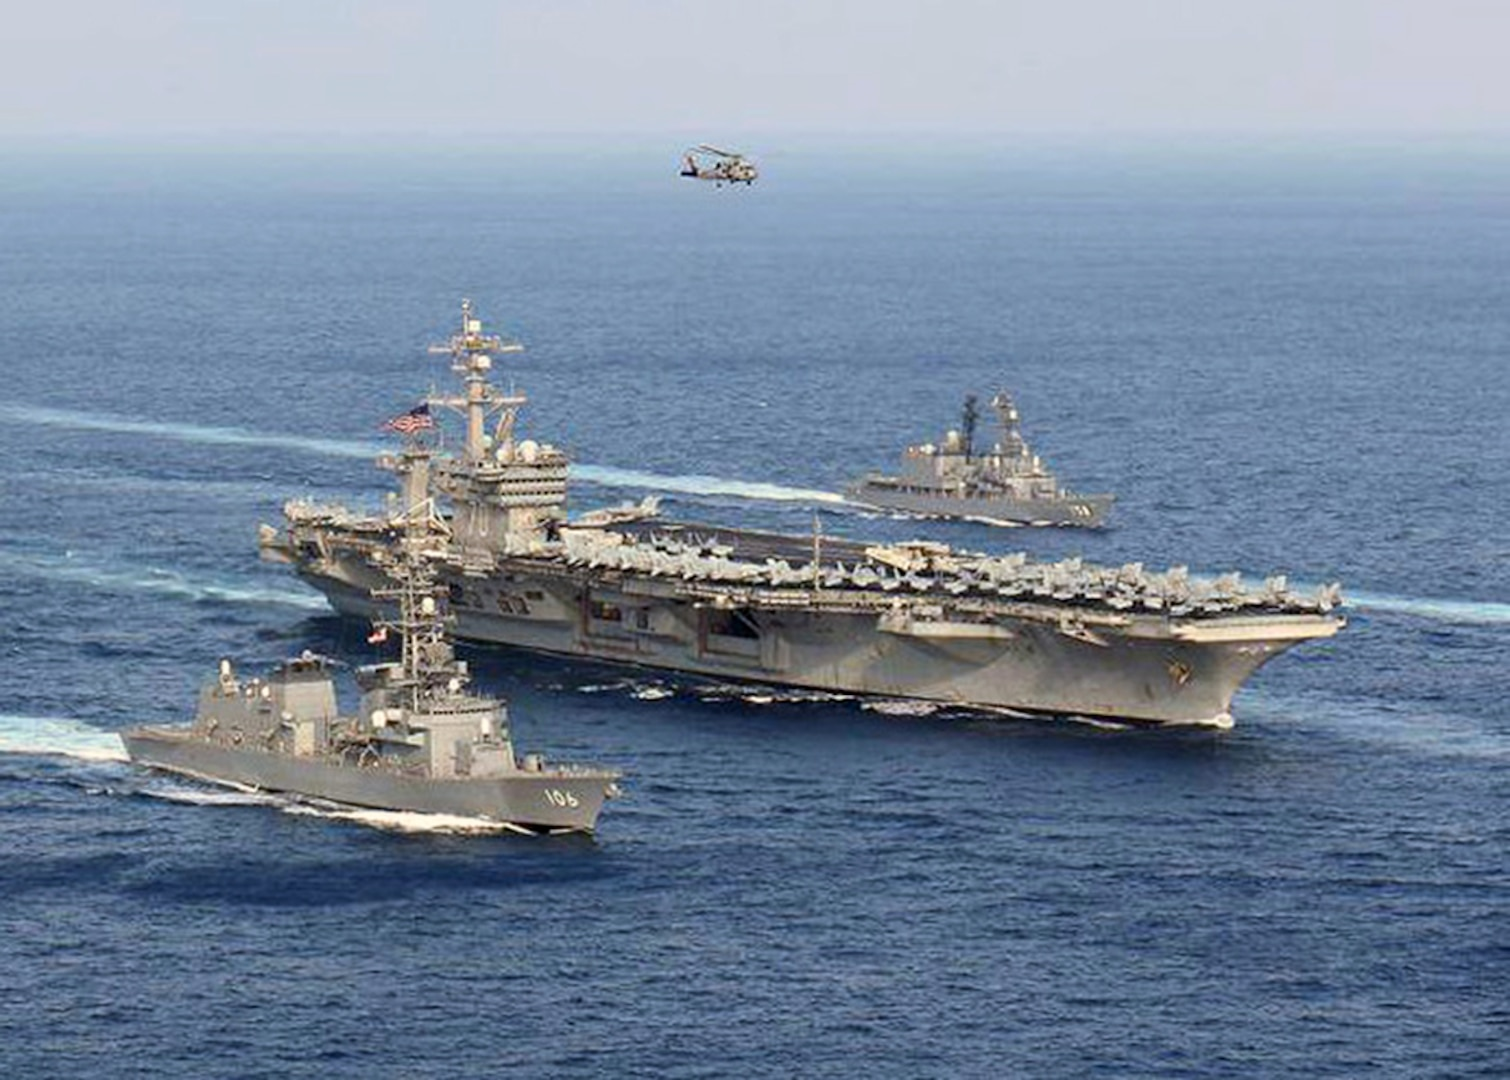 USS Carl Vinson (CVN 70) and Japan Maritime Self-Defense Force (JMSDF) ships steam in formation at the conclusion of a bilateral exercise to increase proficiency in basic maritime skills and improve response capabilities, Mar. 29, 2017. Over a three-day period the Carl Vinson Carrier Strike Group and JMSDF ships conducted multiple maneuvers testing their communications interoperability and ship handling techniques. The Carl Vinson Carrier Strike Group is on a regularly scheduled Western Pacific deployment as part of the U.S. Pacific Fleet-led initiative to extend the command and control functions of U.S. 3rd Fleet. U.S Navy aircraft carrier strike groups have patrolled the Indo-Asia-Pacific regularly and routinely for more than 70 years.